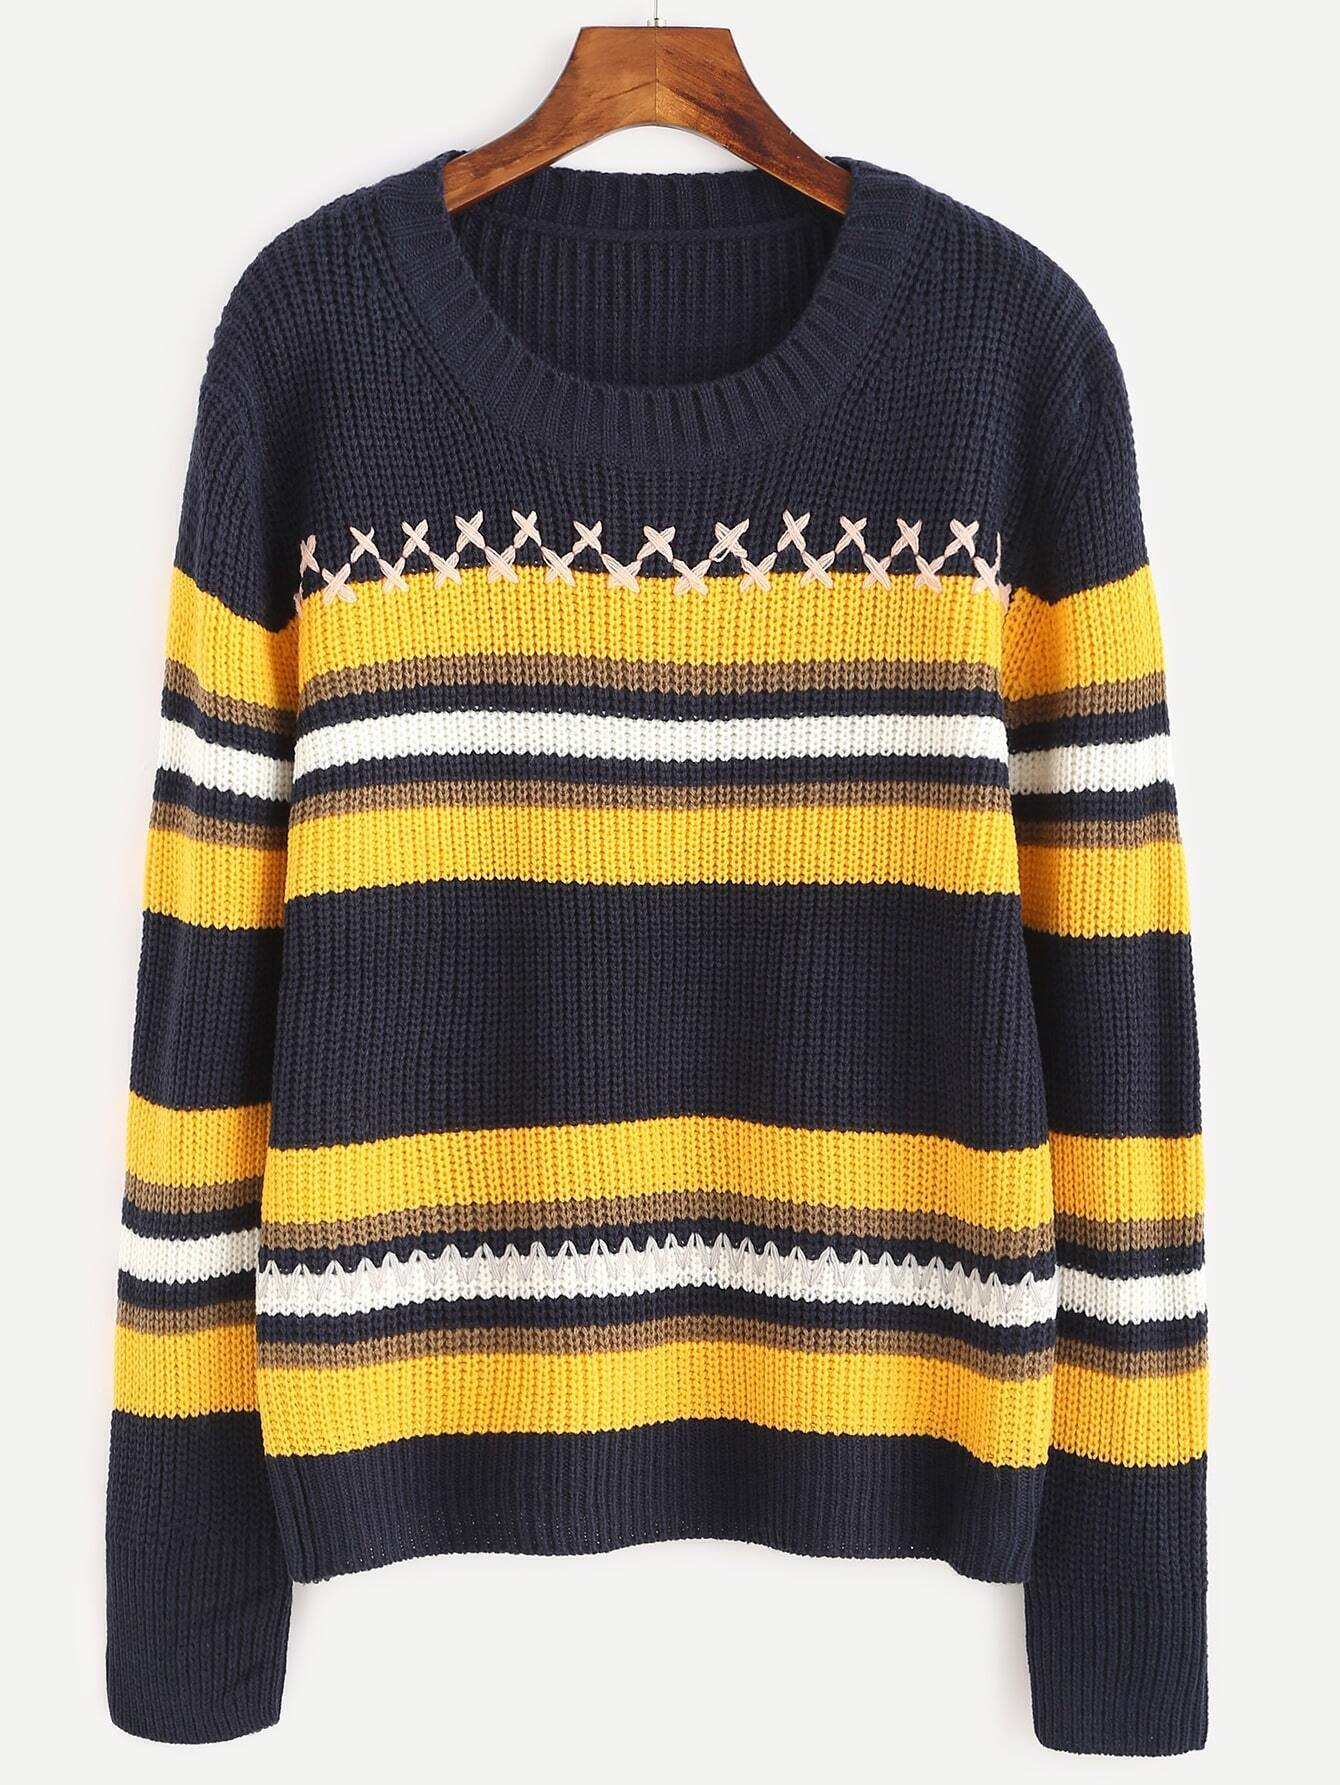 Navy Striped Ribbed Sweater sweater160922103